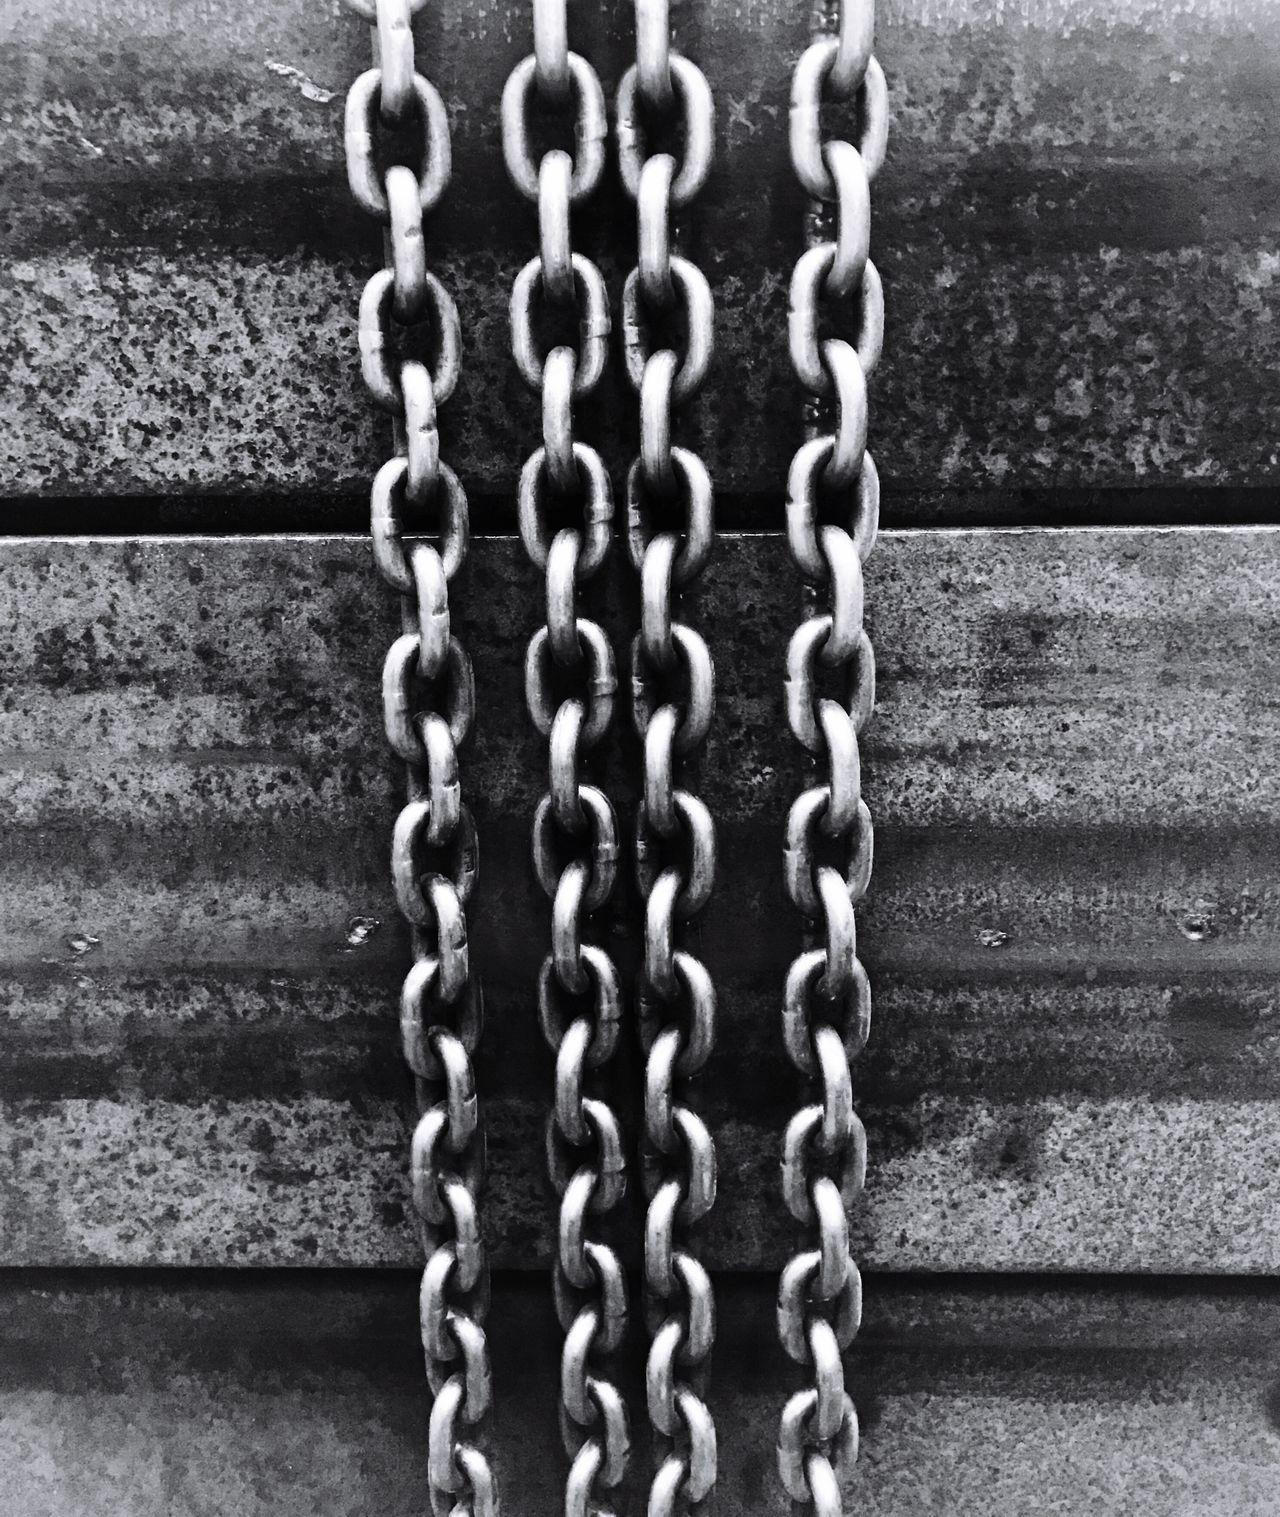 Steel Structure  Chain Metal Close-up Day Outdoors No People Hanging Construction Engineering